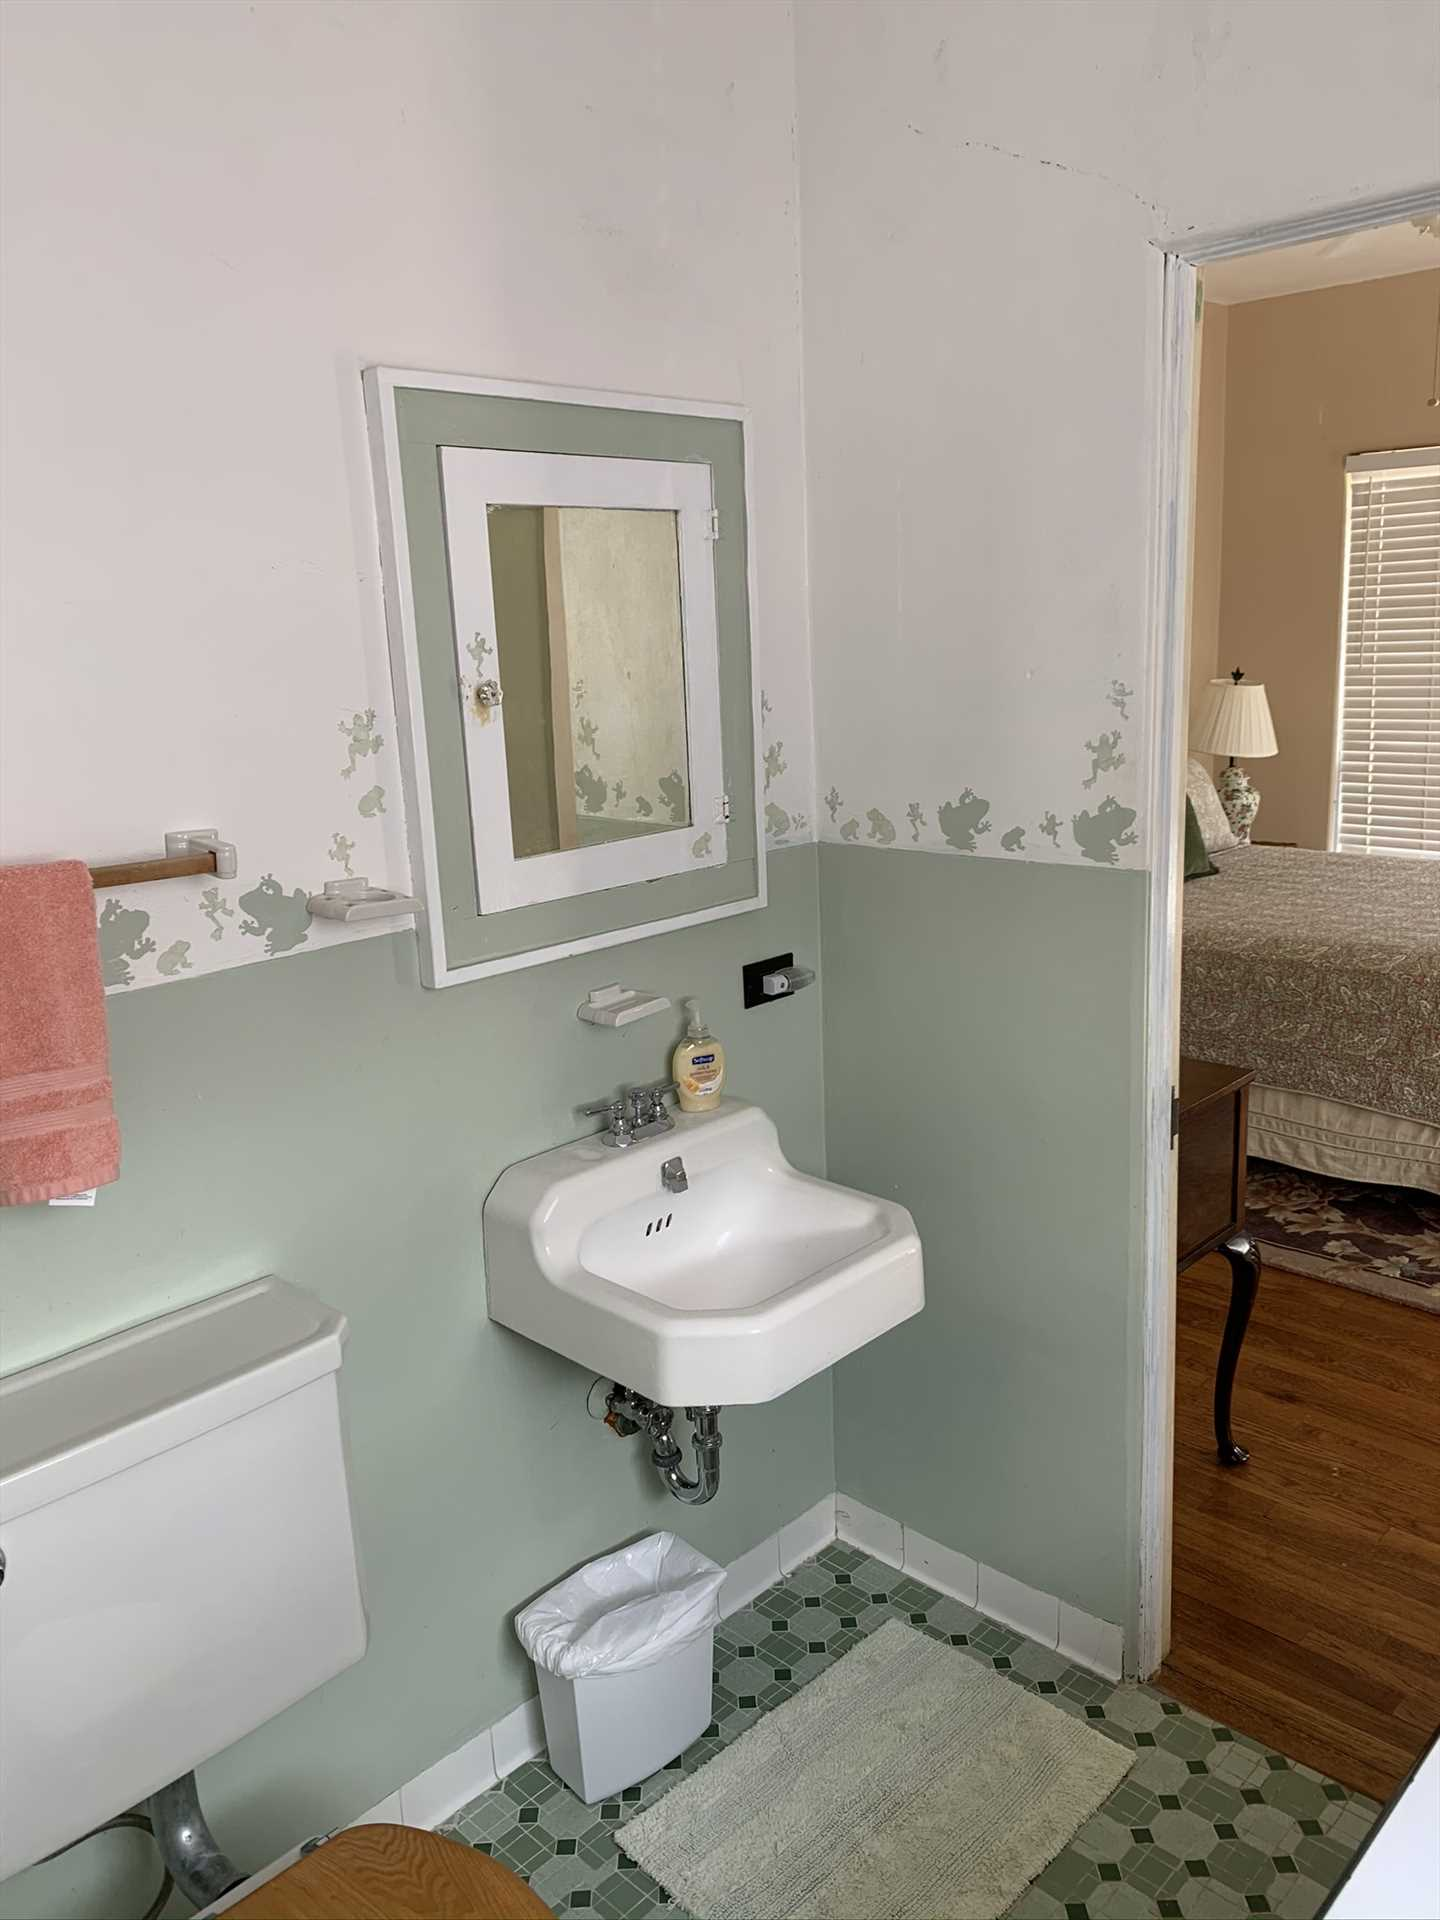 The master and second bedrooms upstairs share this colorful Jack & Jill bath, which is fully equipped with a shower.